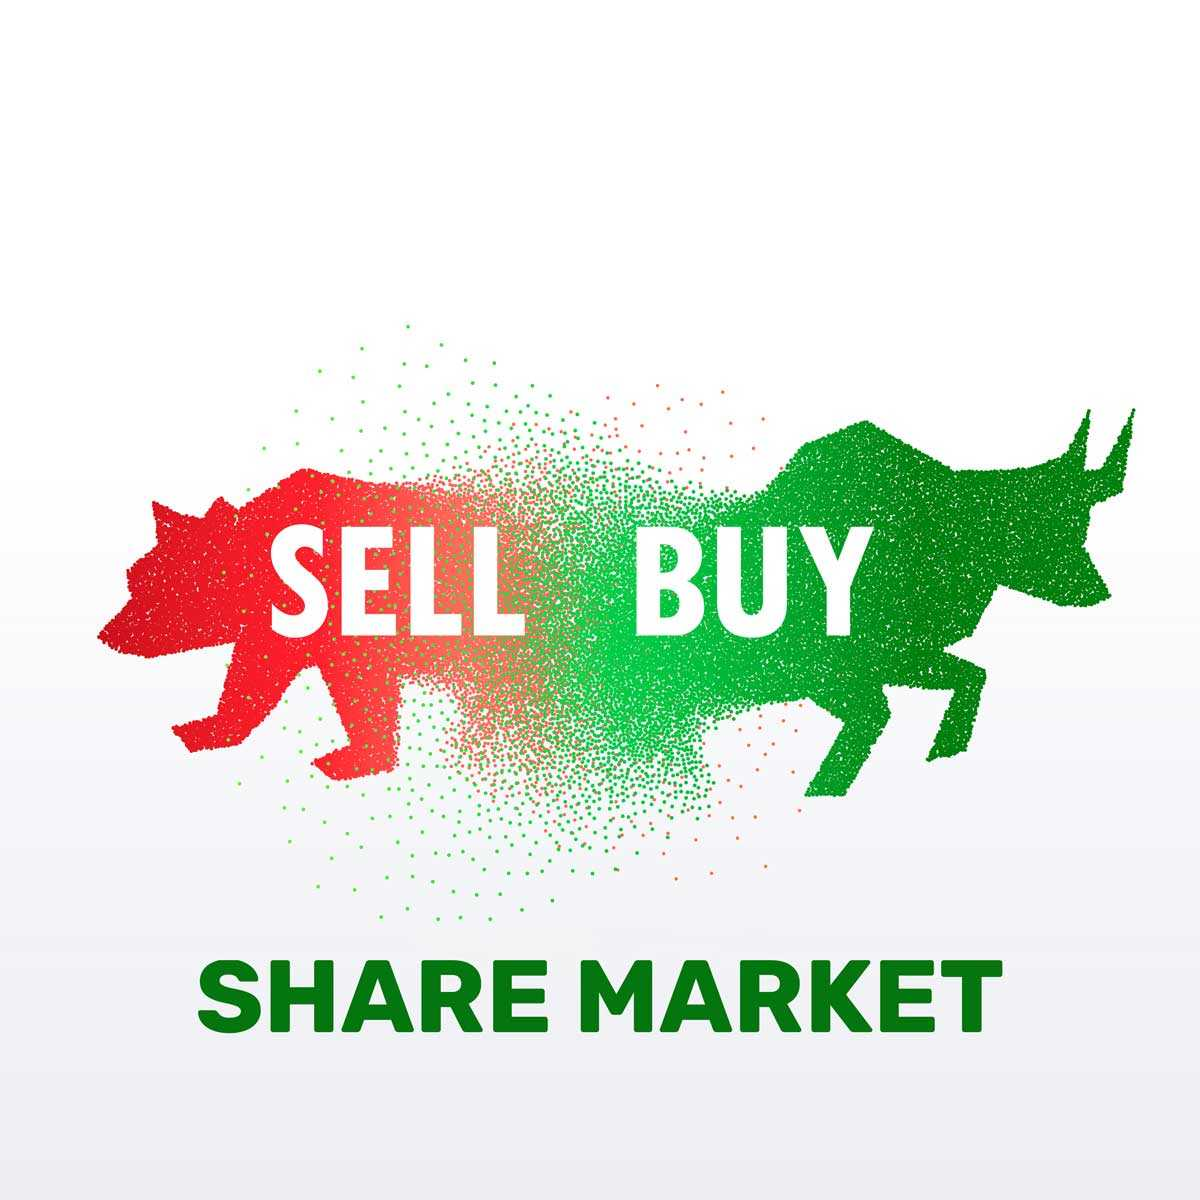 5 Things to Know Before Investing In Share Market